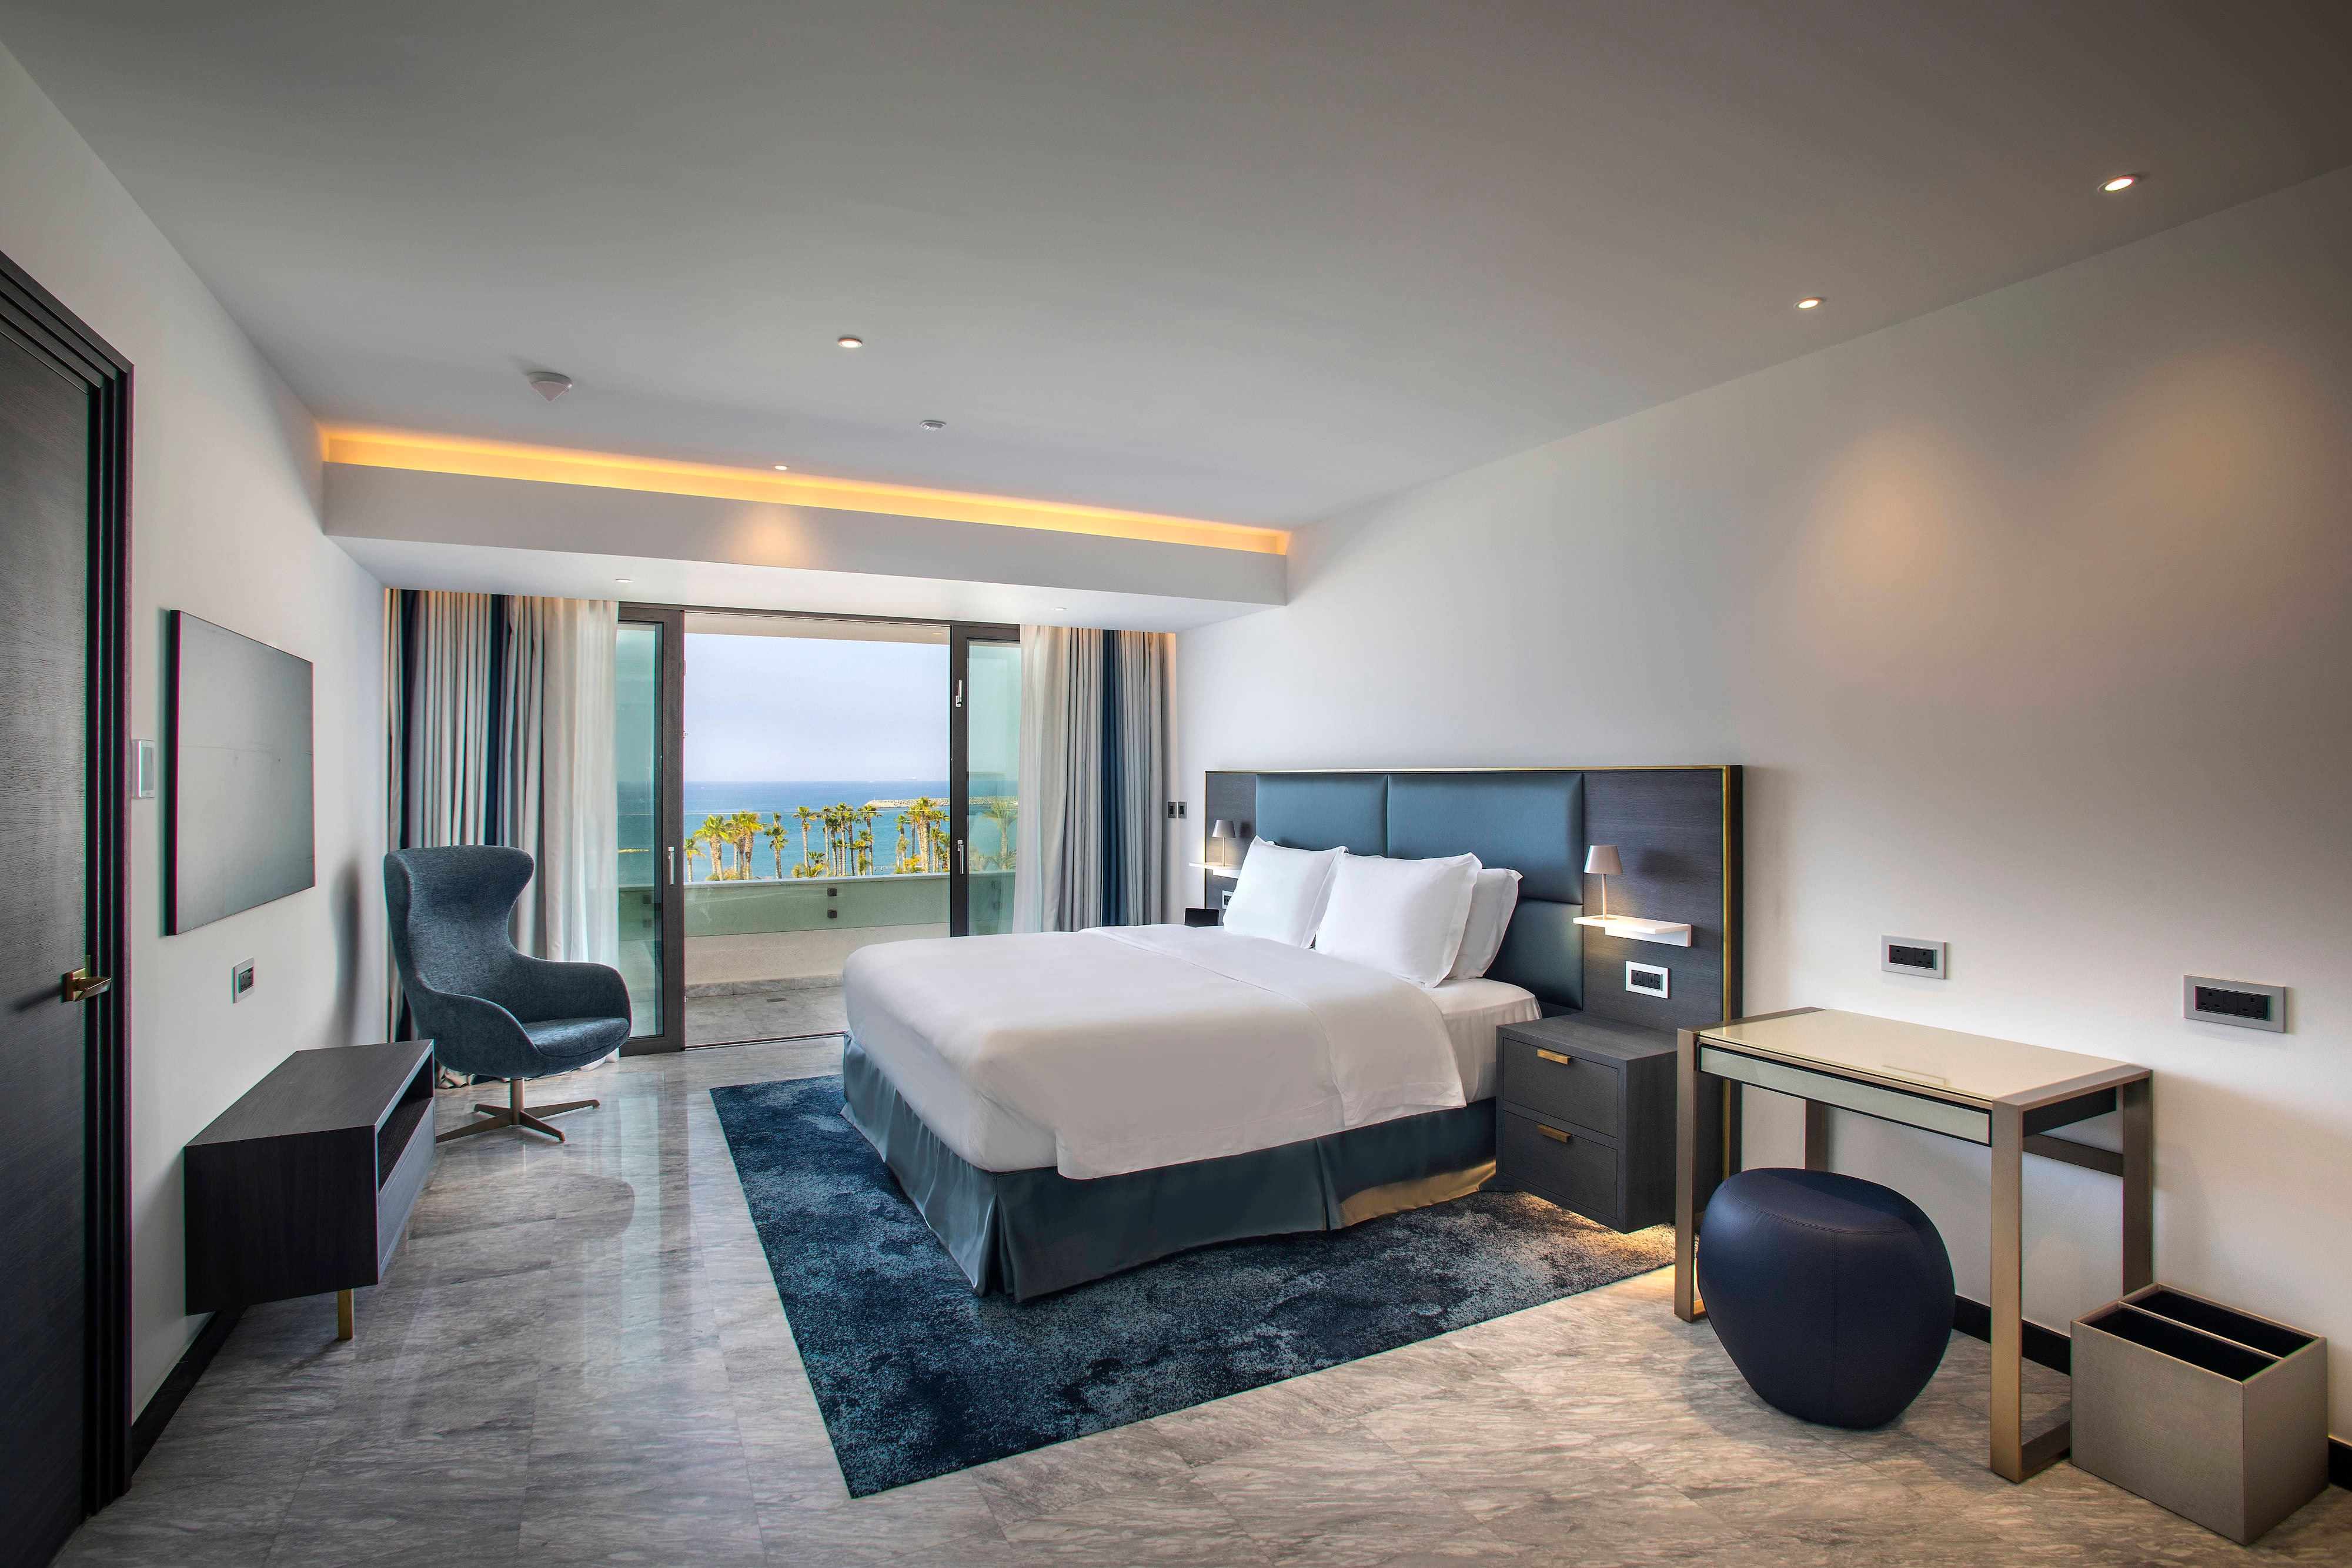 Lifestyle Suite - Bedroom